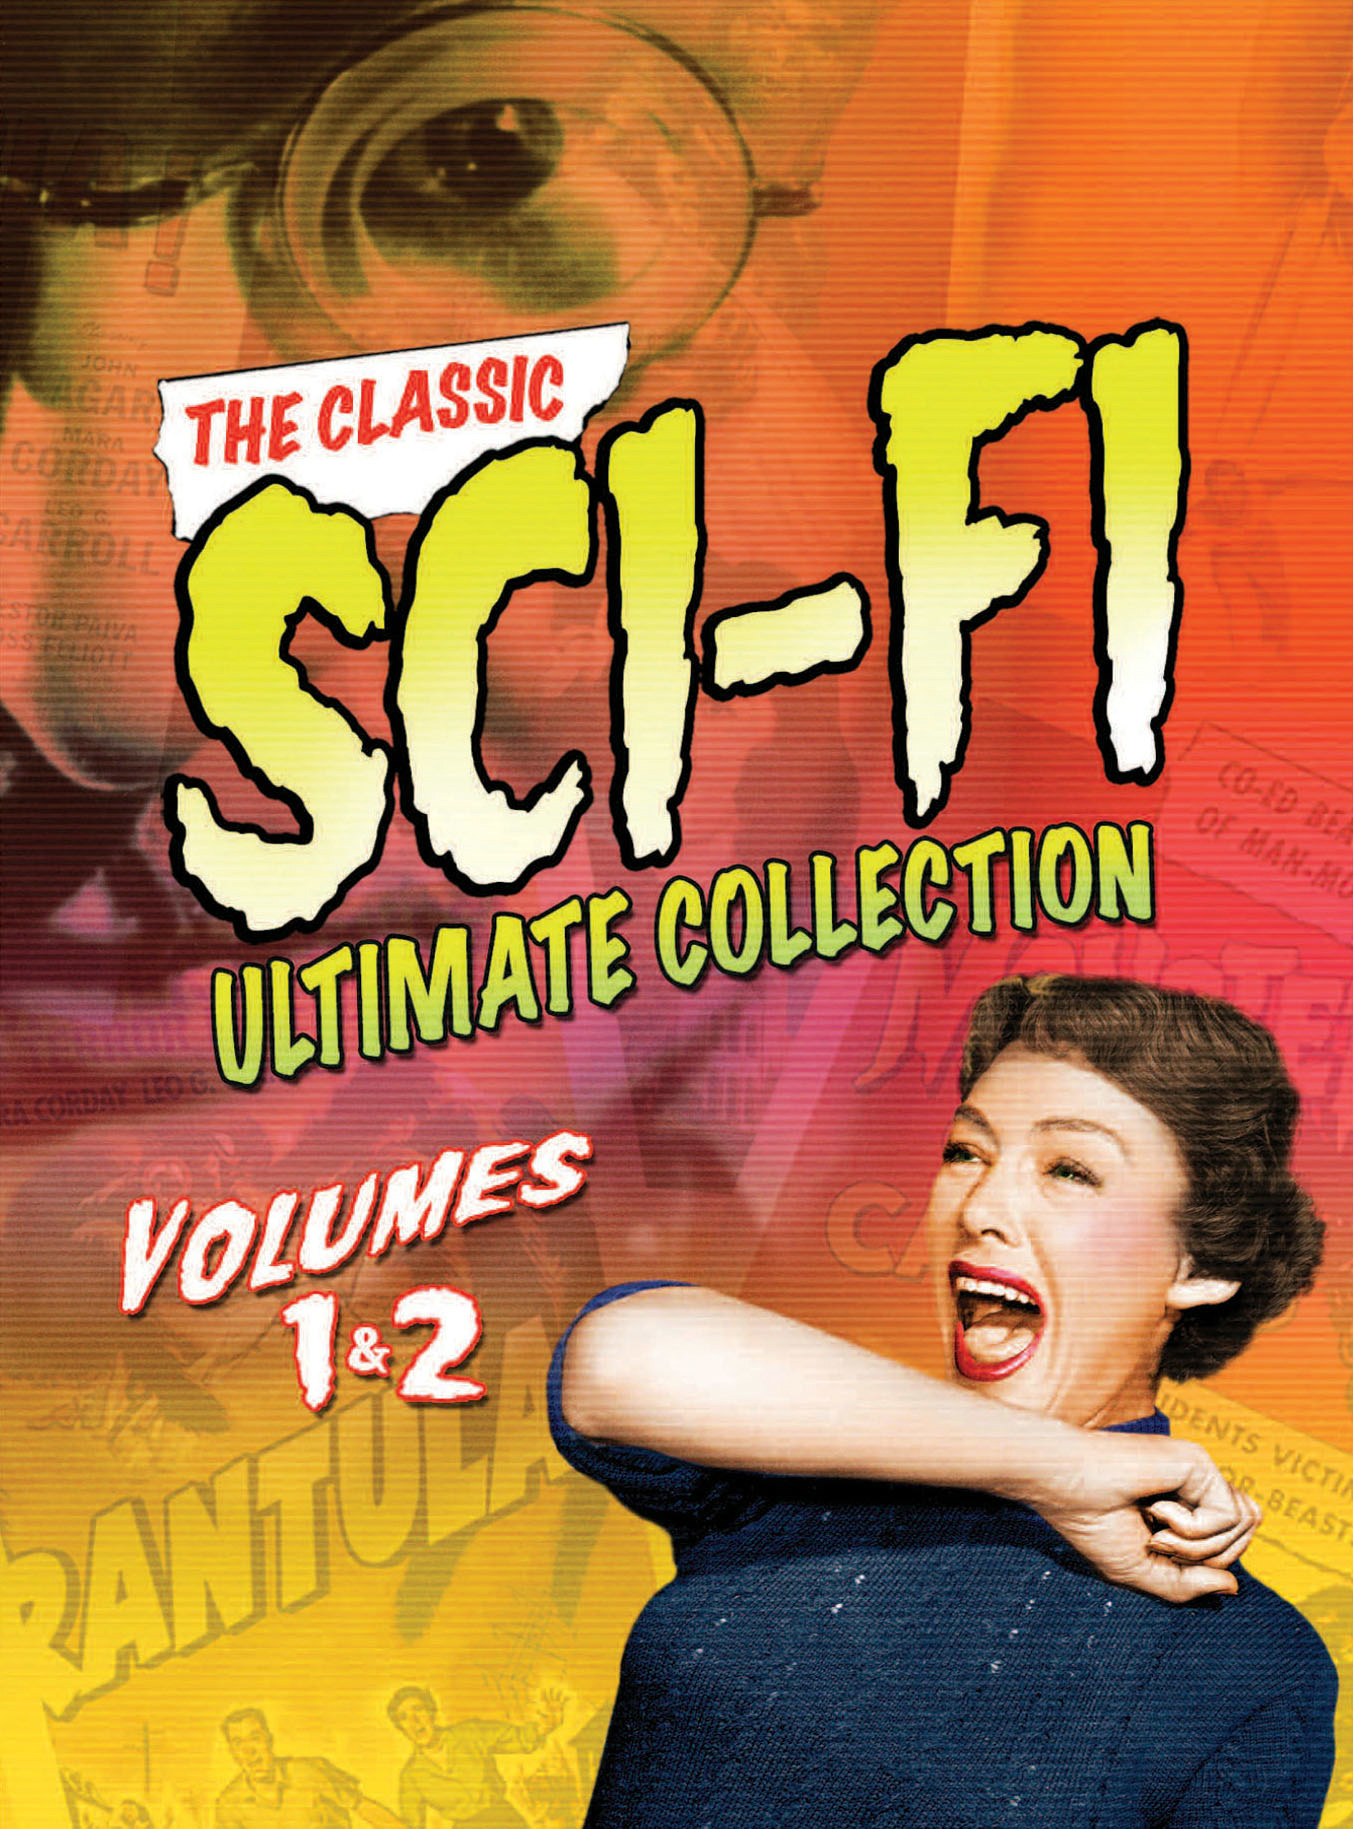 The Classic Sci-Fi Ultimate Collection: Volume 1 & 2 [DVD]